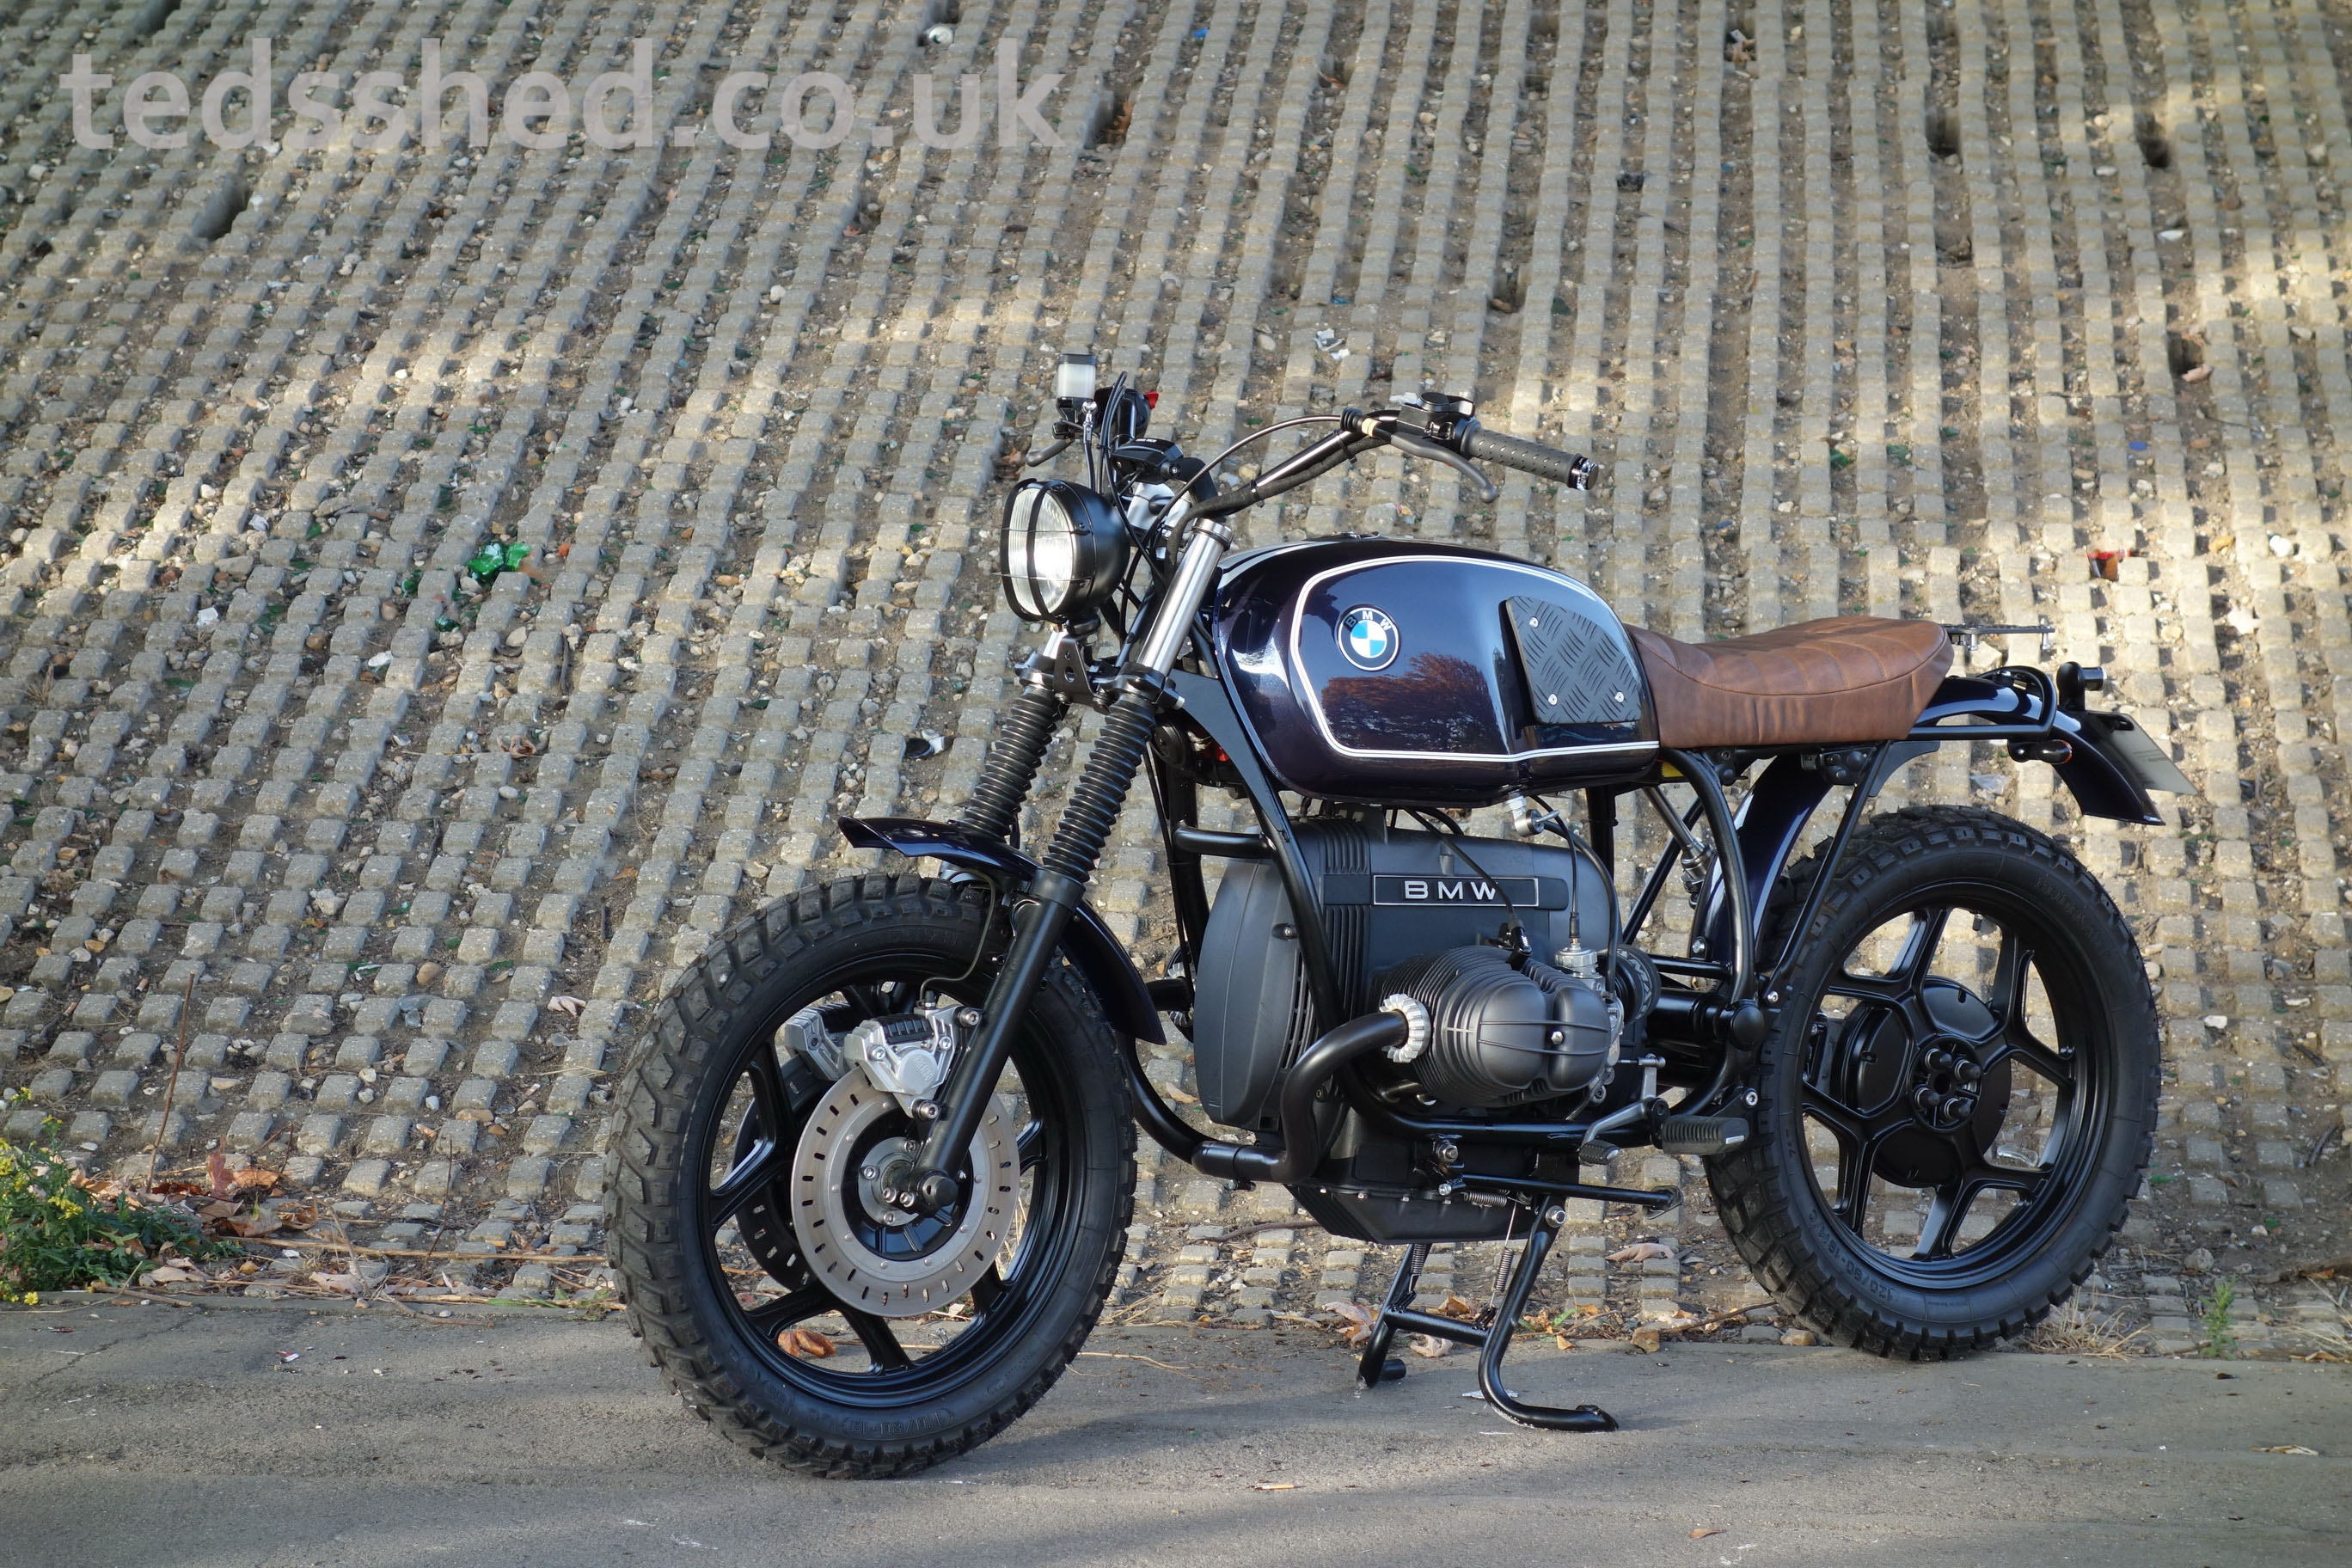 BMW R80 Scrambler Project – tedsshed co uk